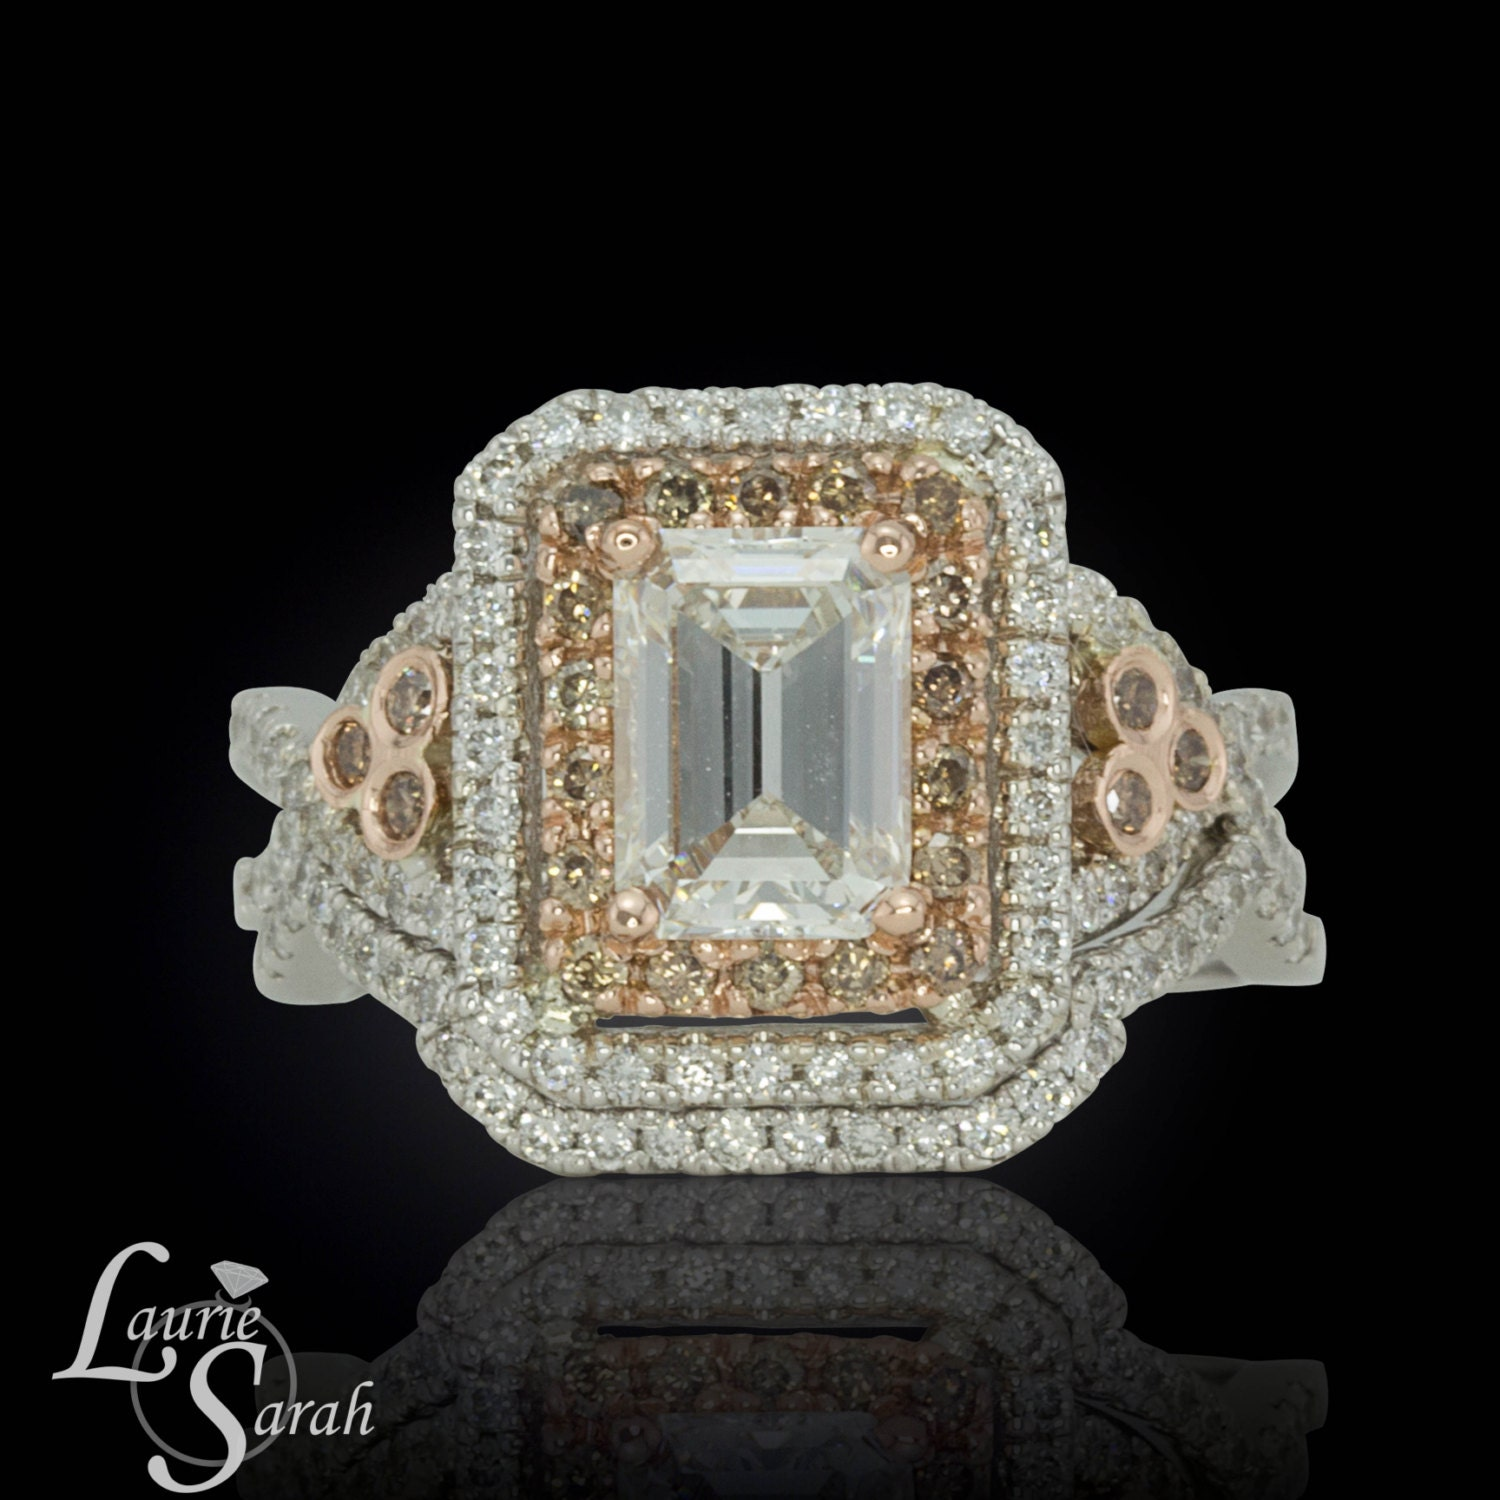 Emerald Cut Diamond Wedding Set with Brown Diamond Halo and